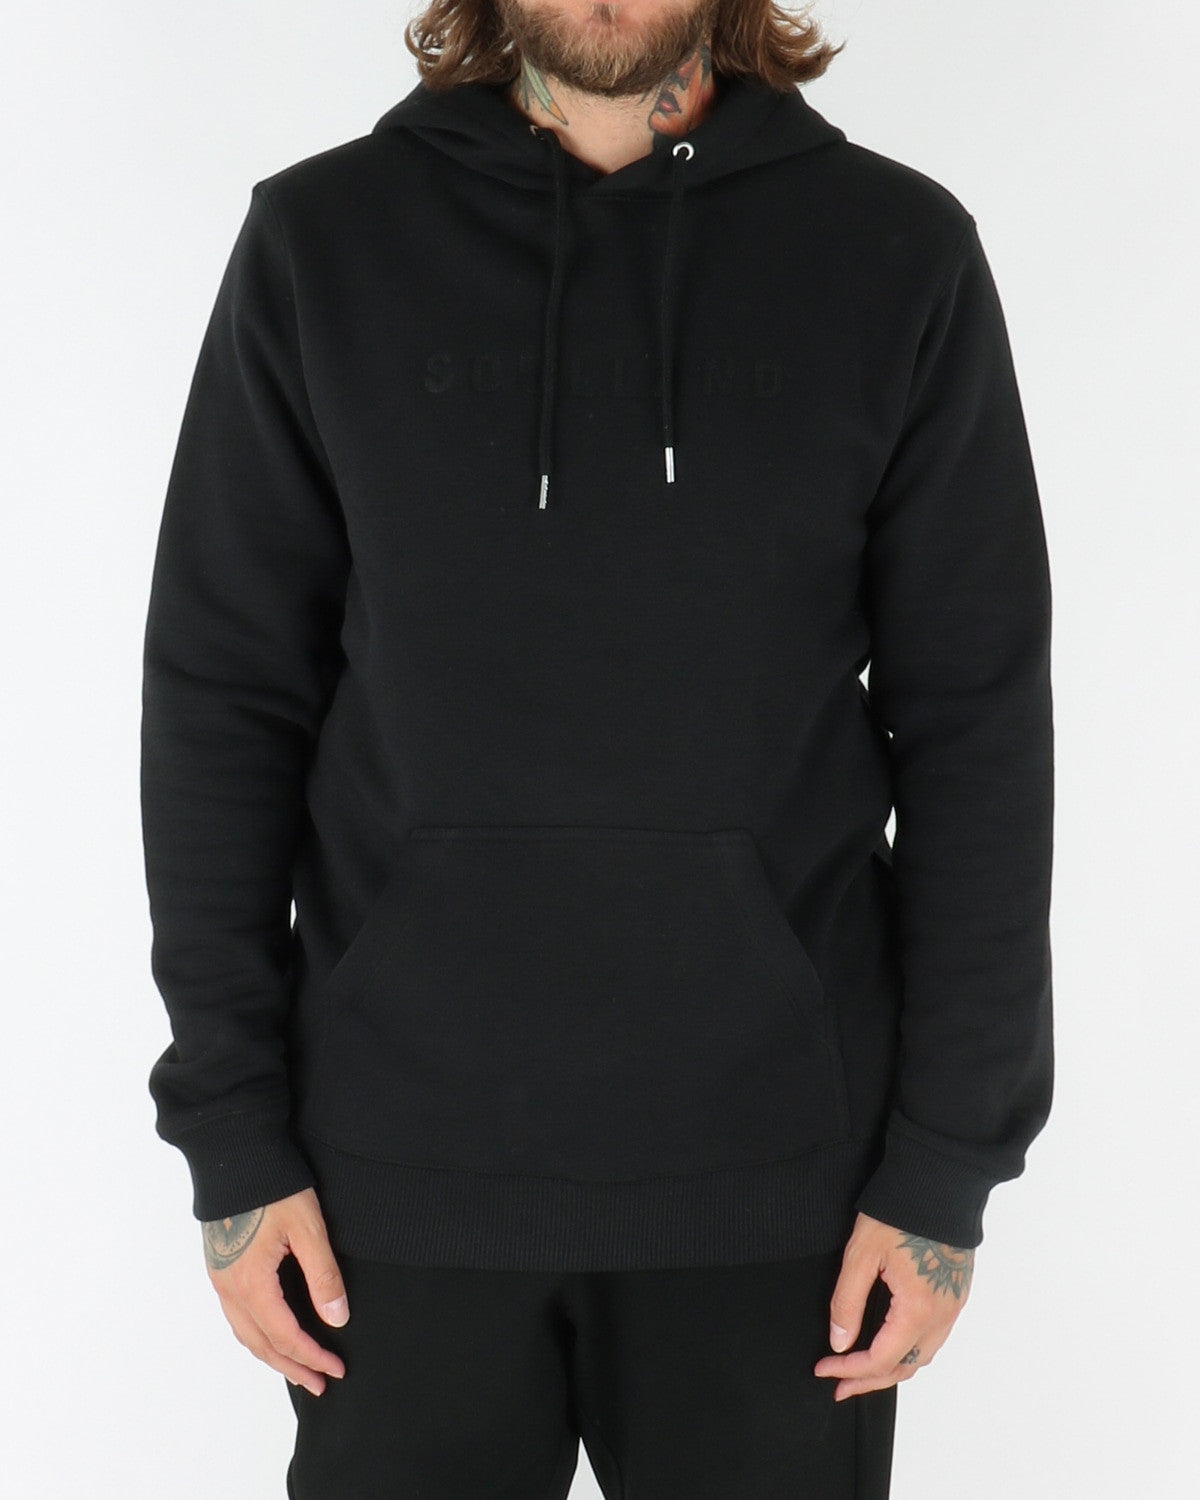 soulland_guy_hooded sweat_black_view_1_3